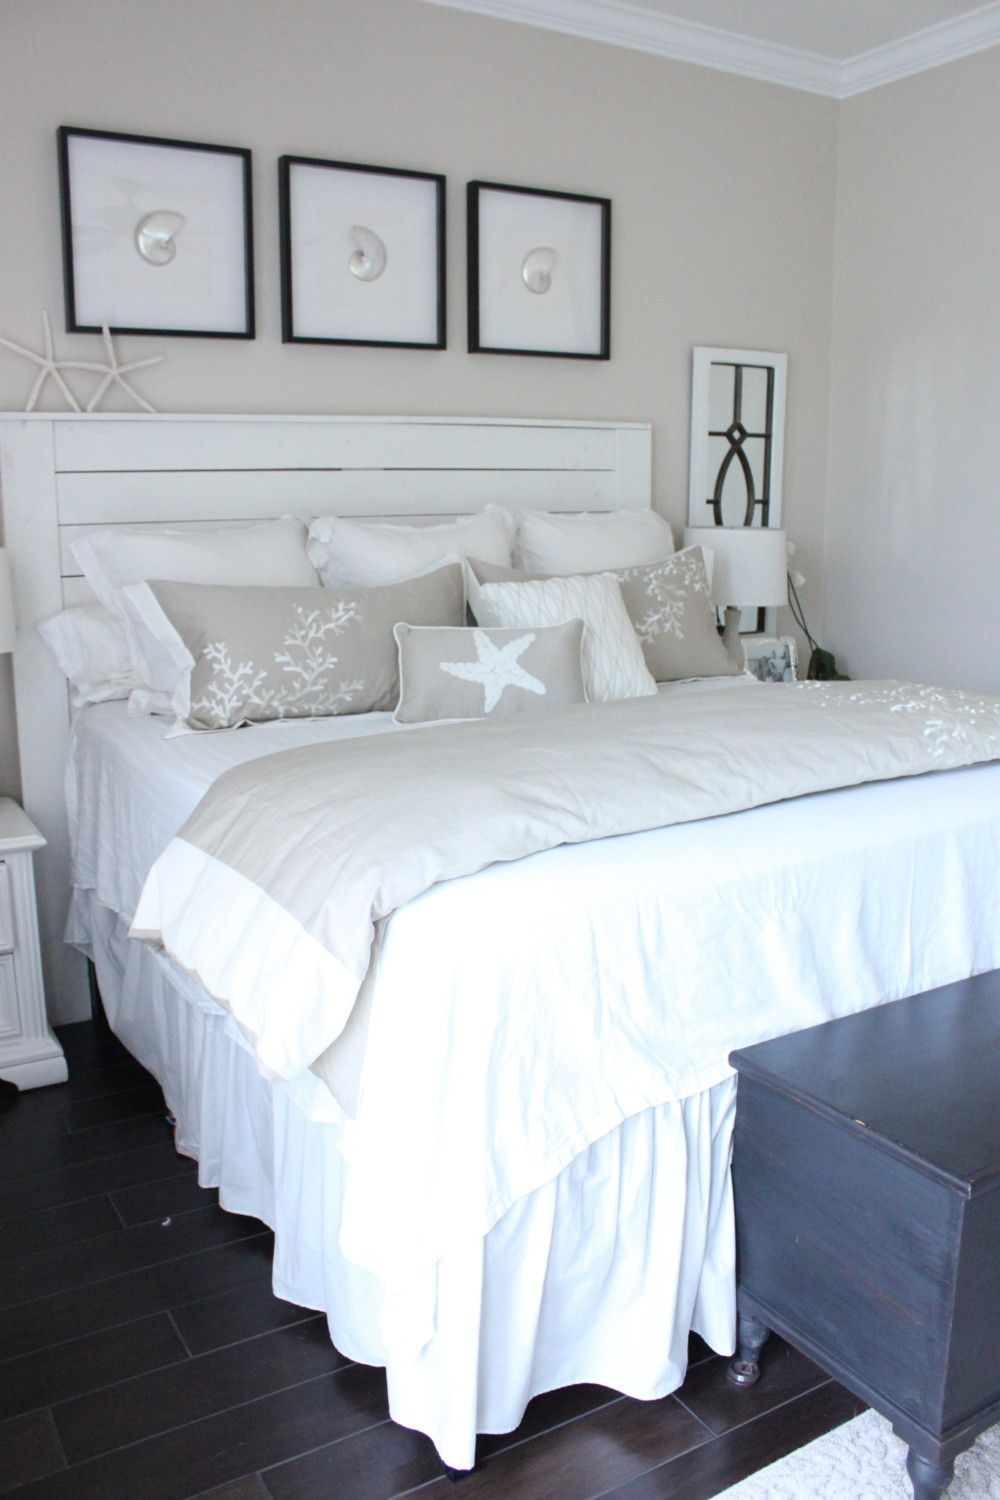 A Coastal Style Bedroom Makeover with Caron's Beach House #beachcottagestyle